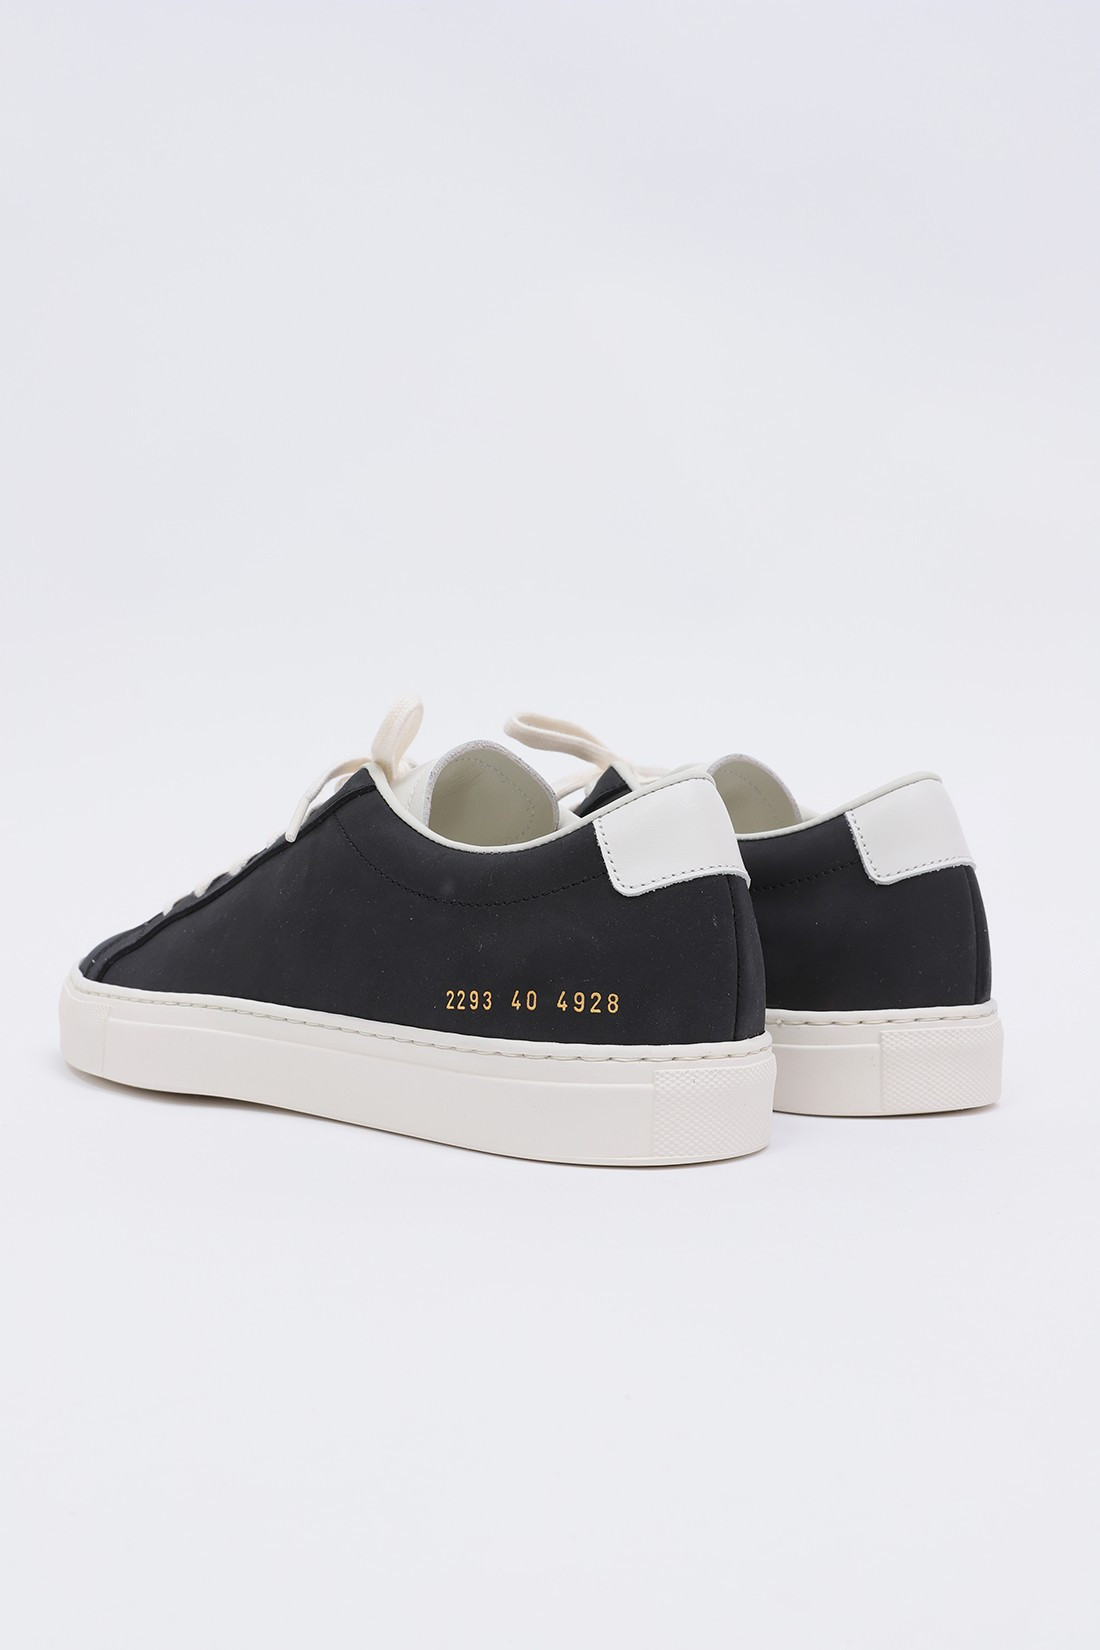 COMMON PROJECTS / Achilles low nubuck 2293 Navy